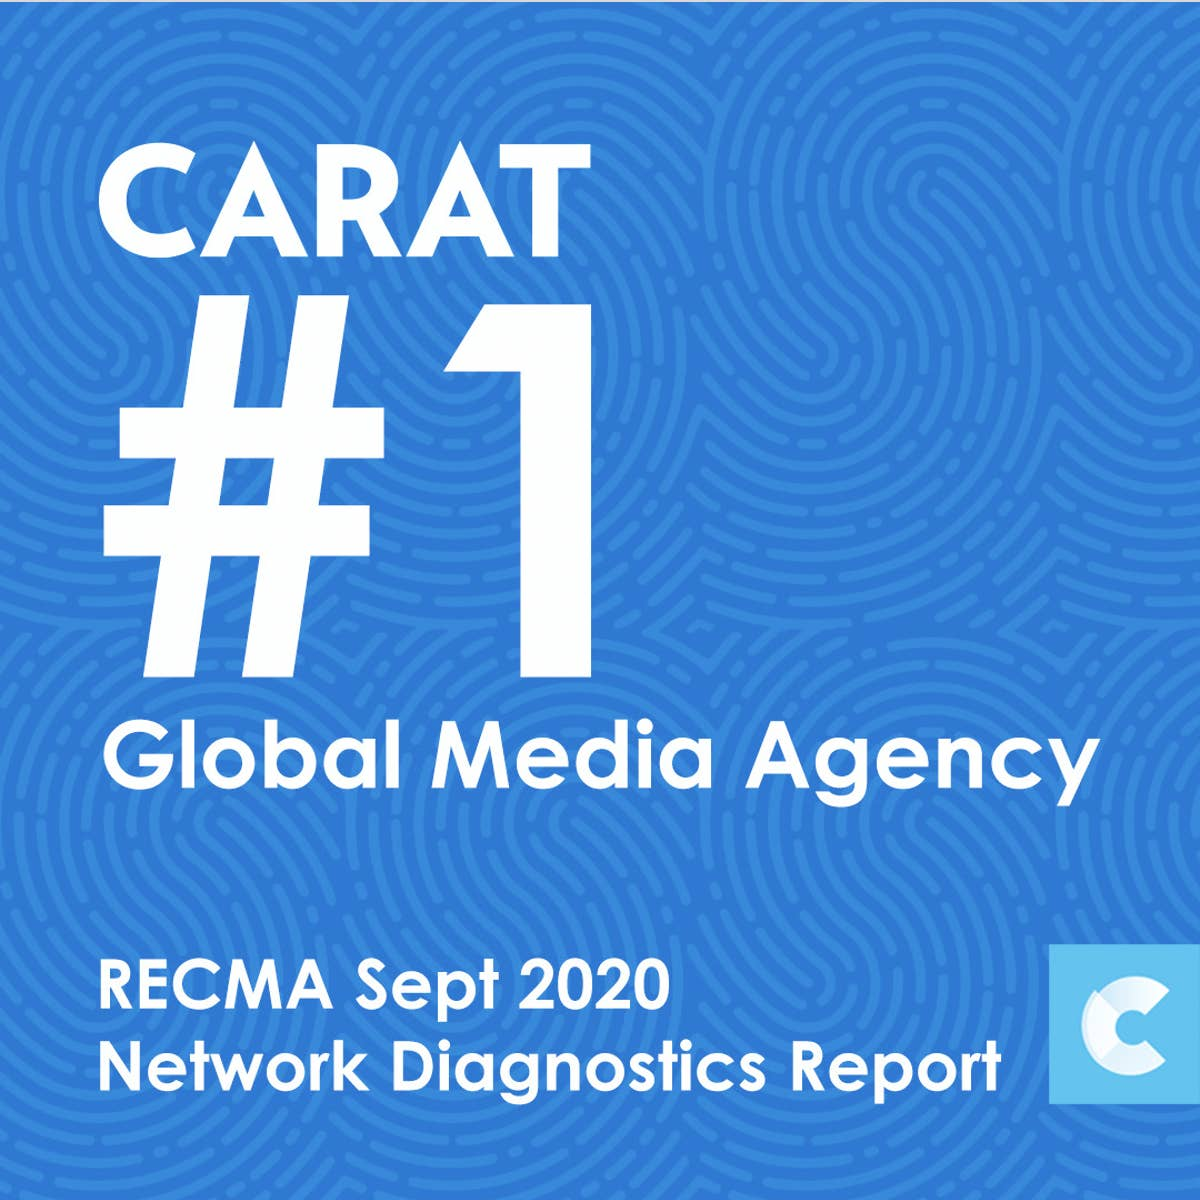 Carat behoudt #1 positie in RECMA Qualitative Diagnostics Report